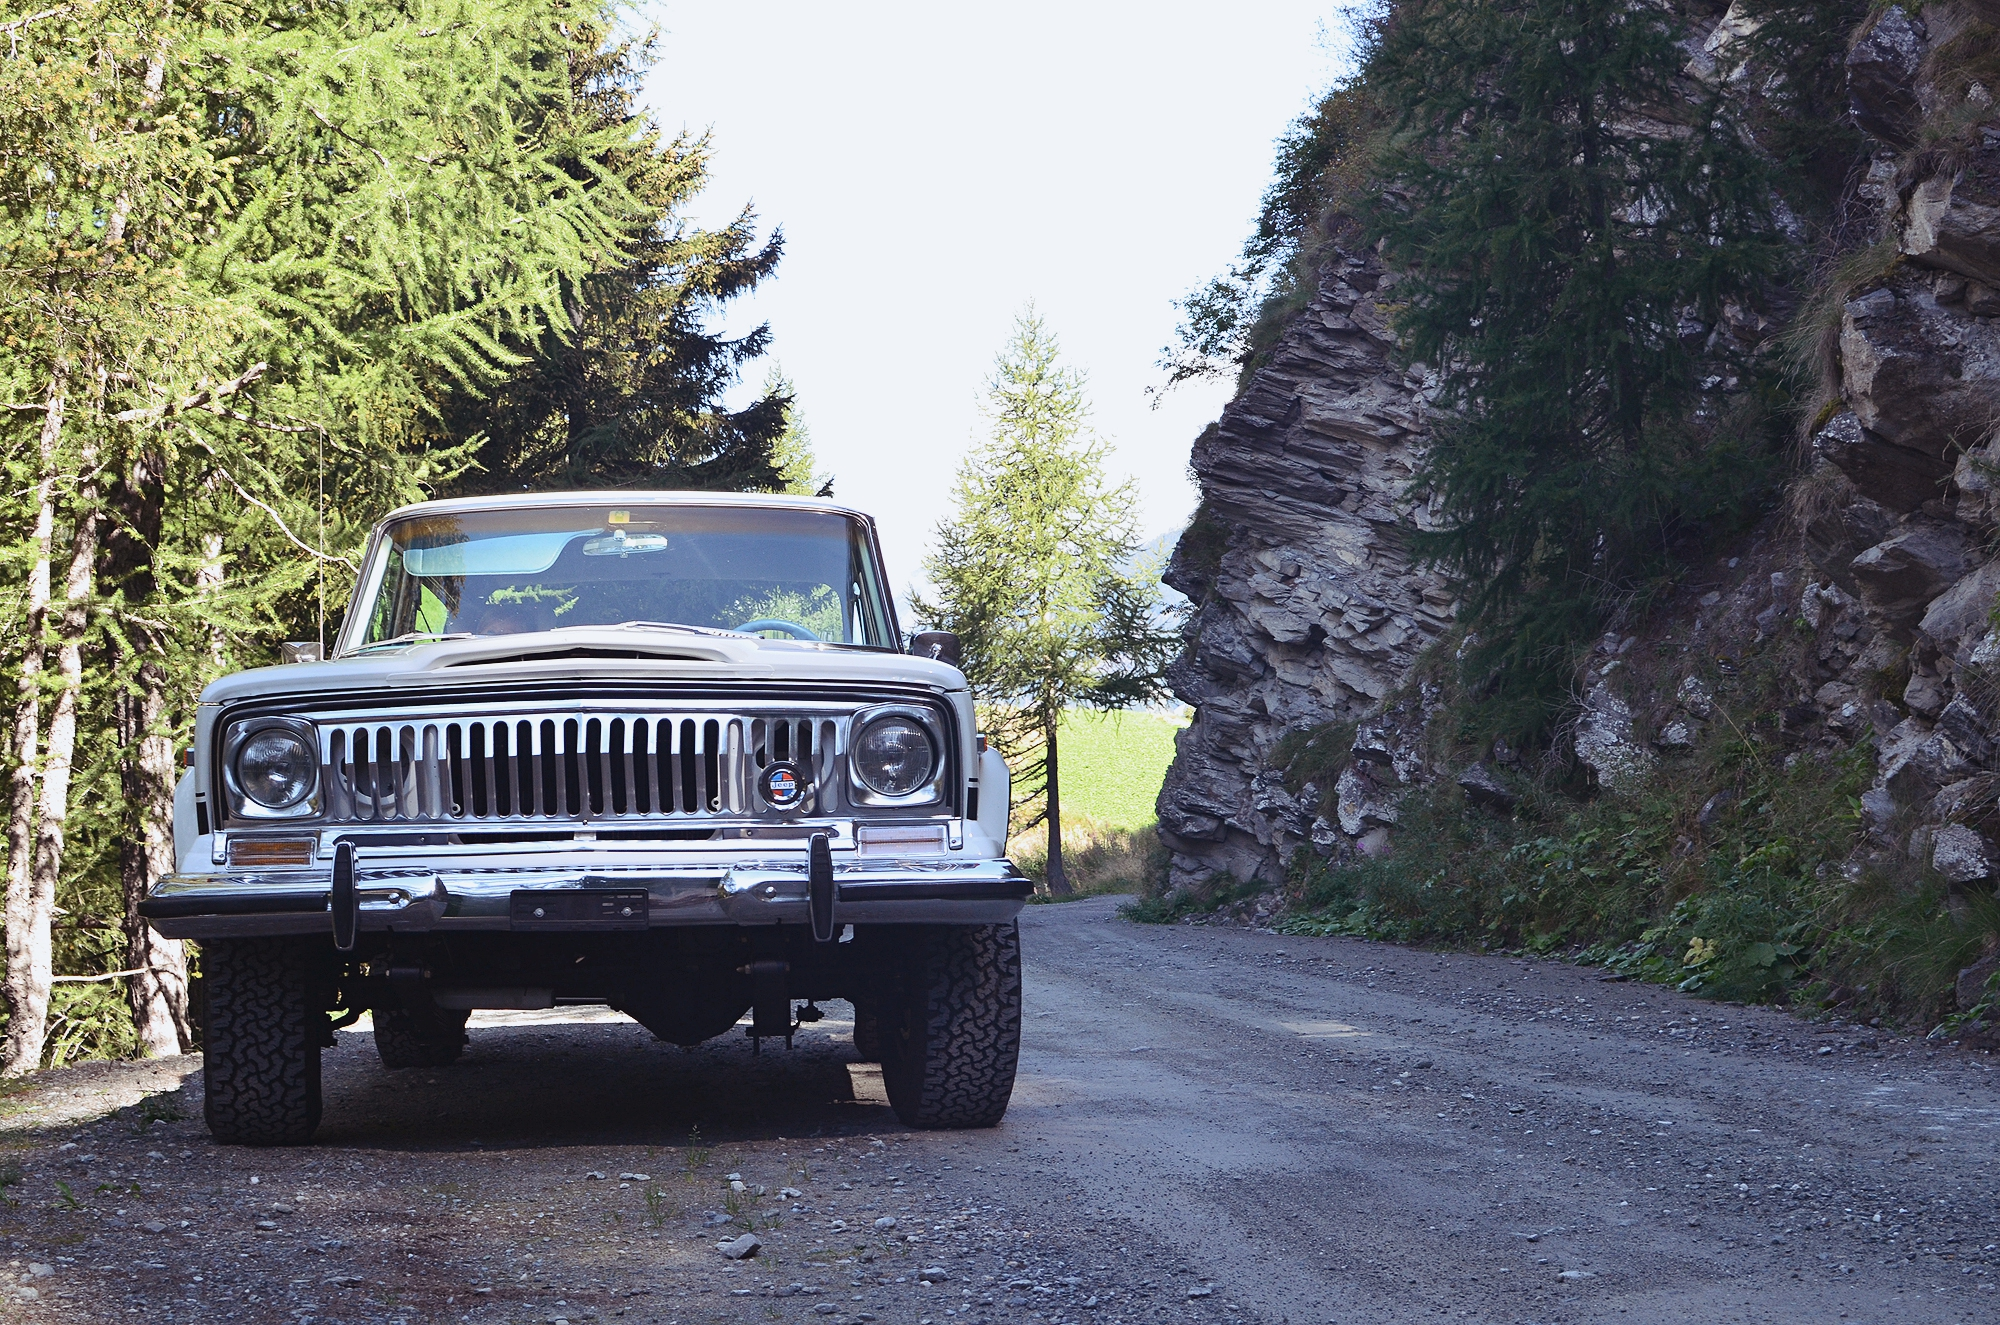 jeep-cherokee-chief-shooting-28_Fotor.jpg